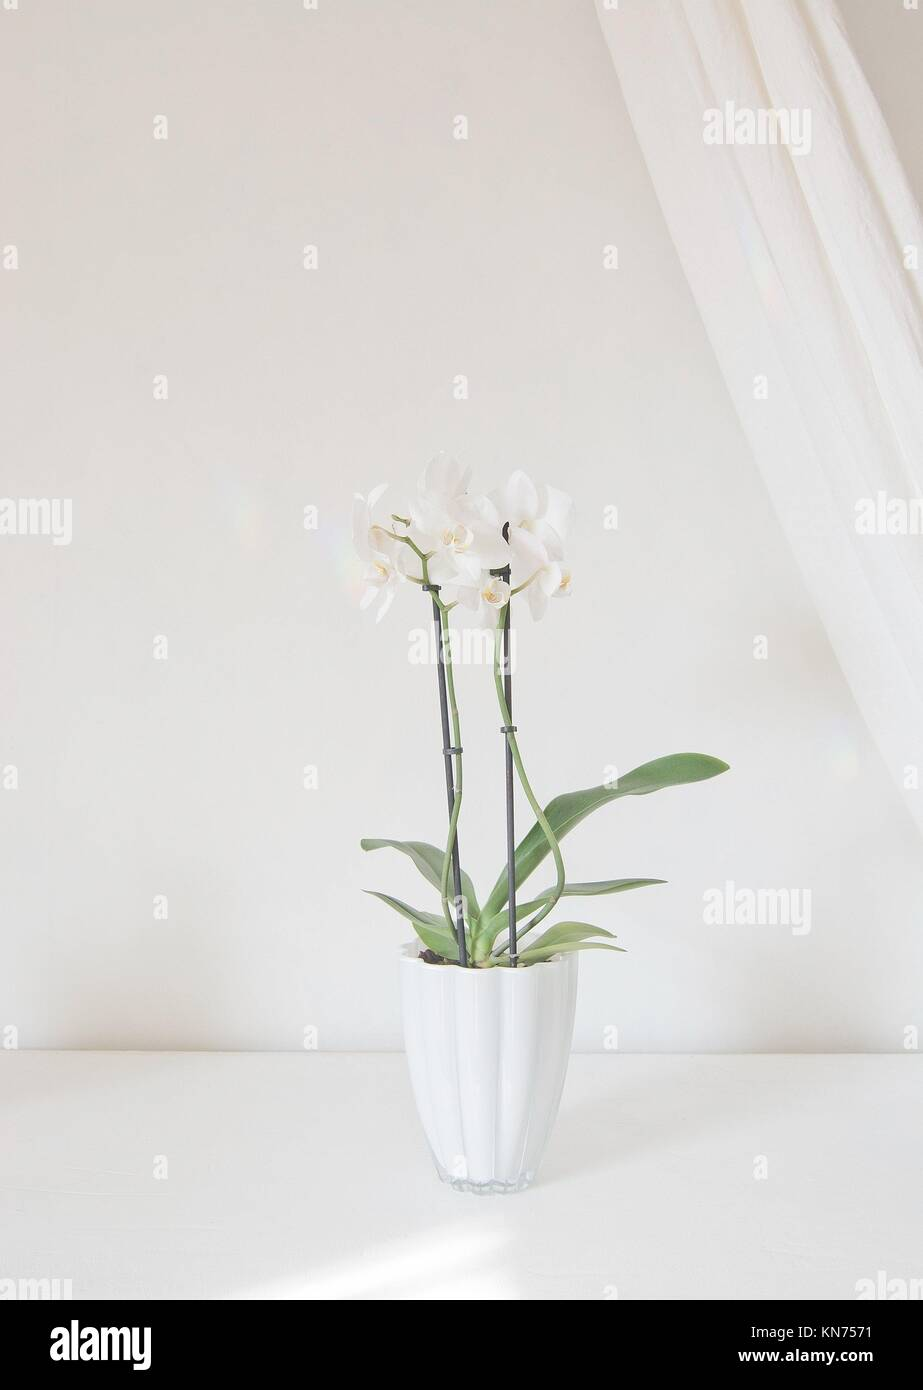 White orchid flowers in pot with white linen drape against white wall. Stock Photo